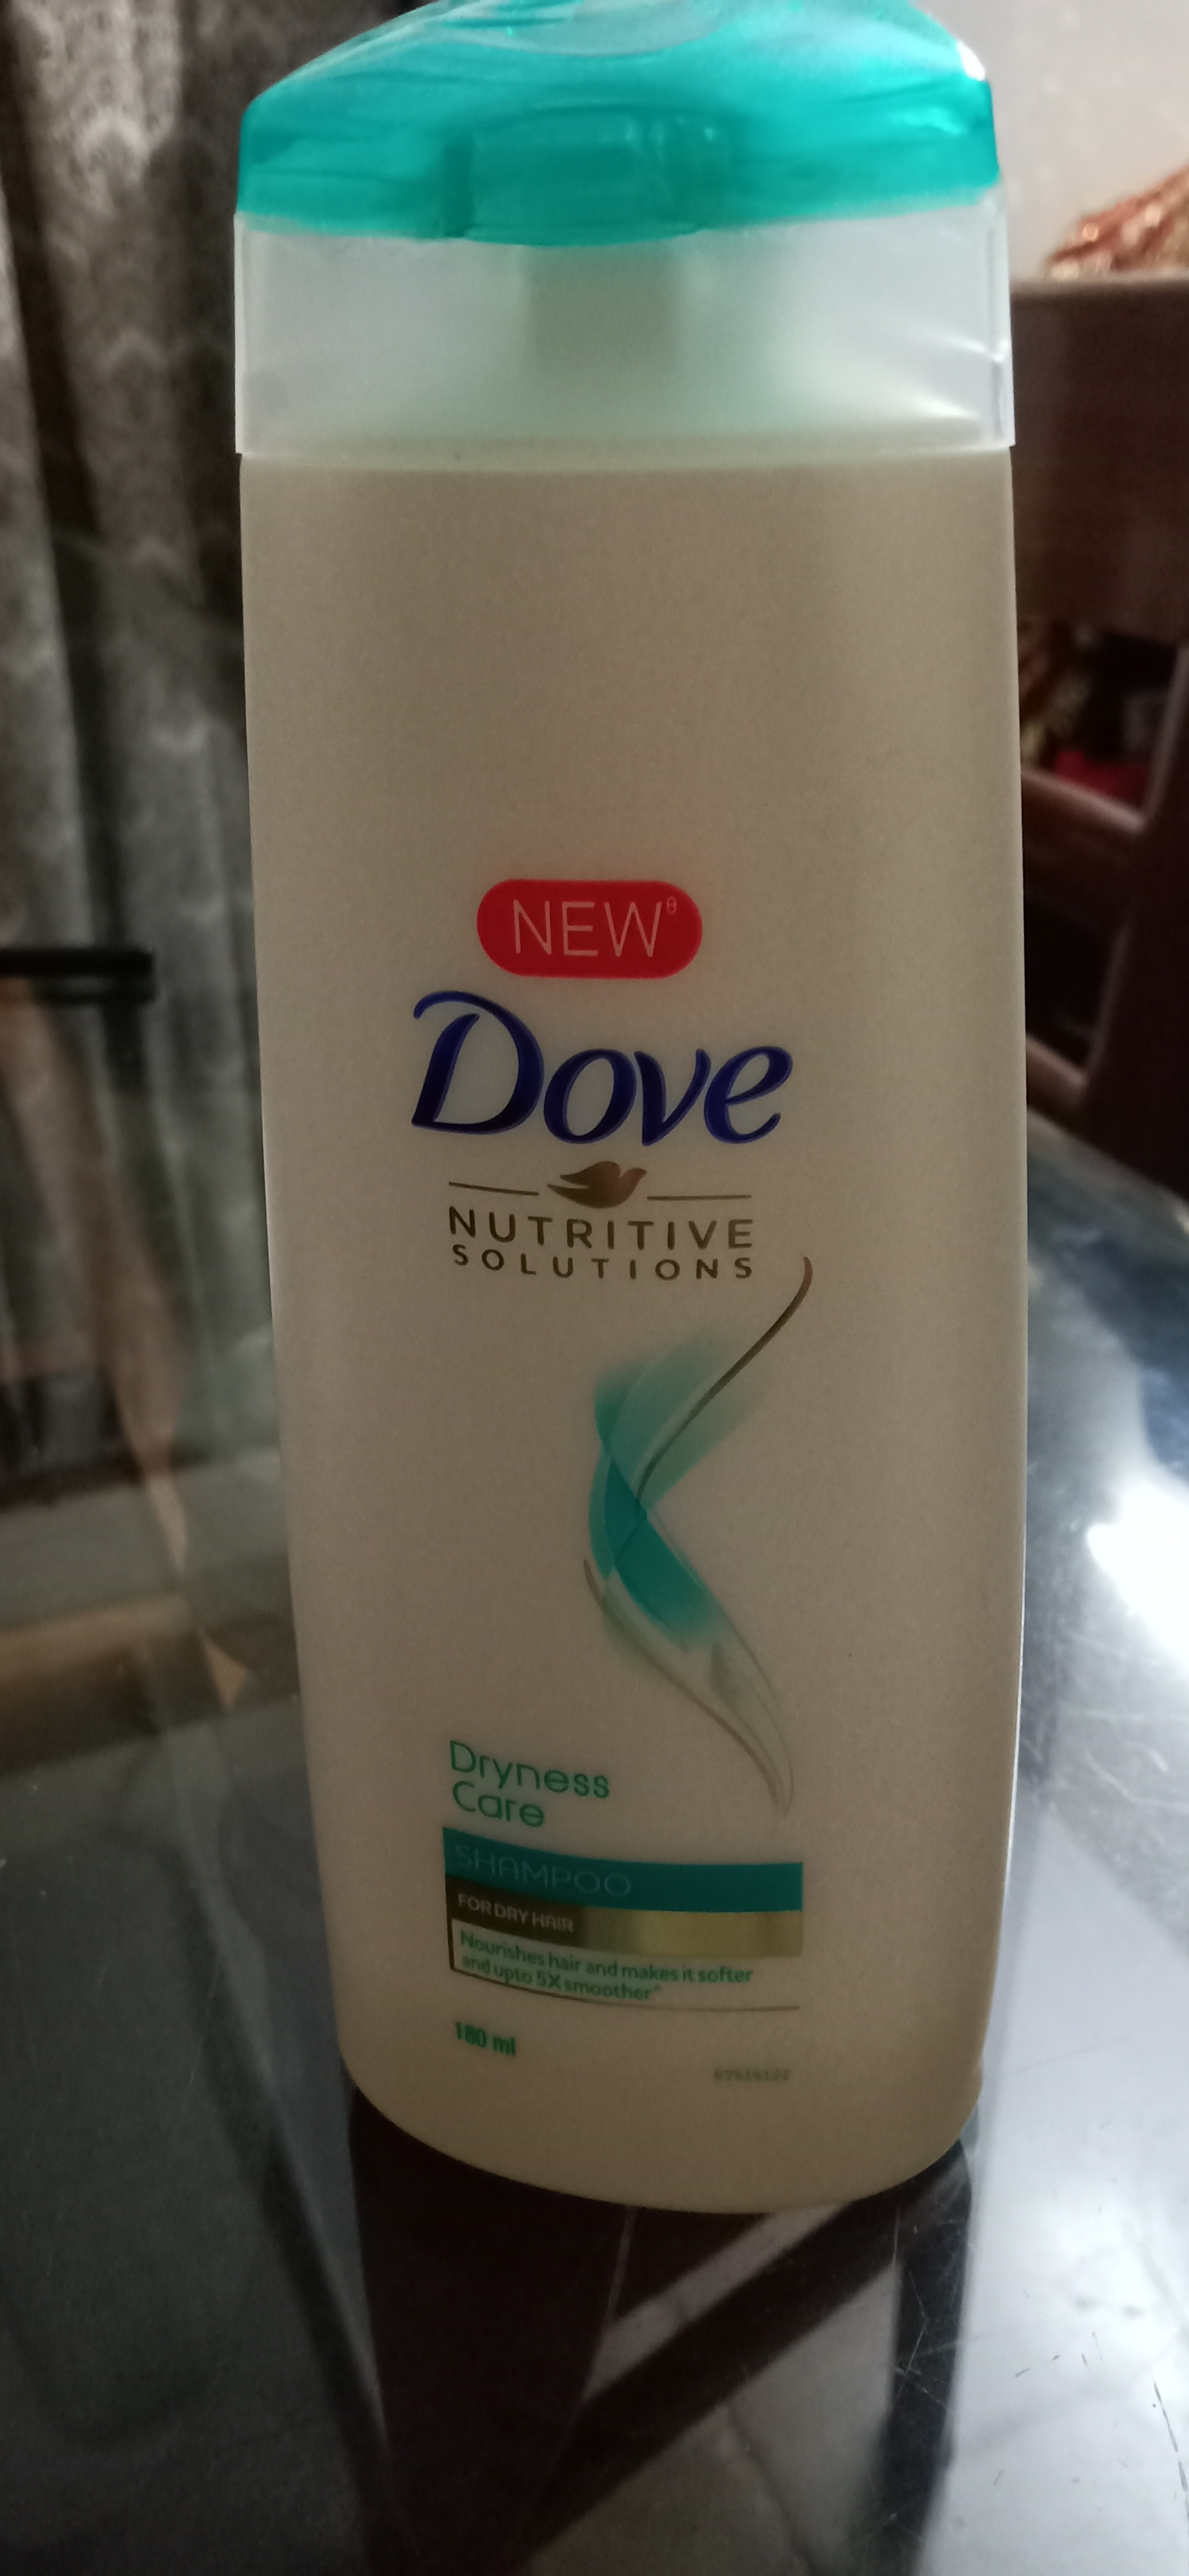 Dove Dryness Care Shampoo-Dove Dryness Care Shampoo is average-By vasundhara_juyal-1